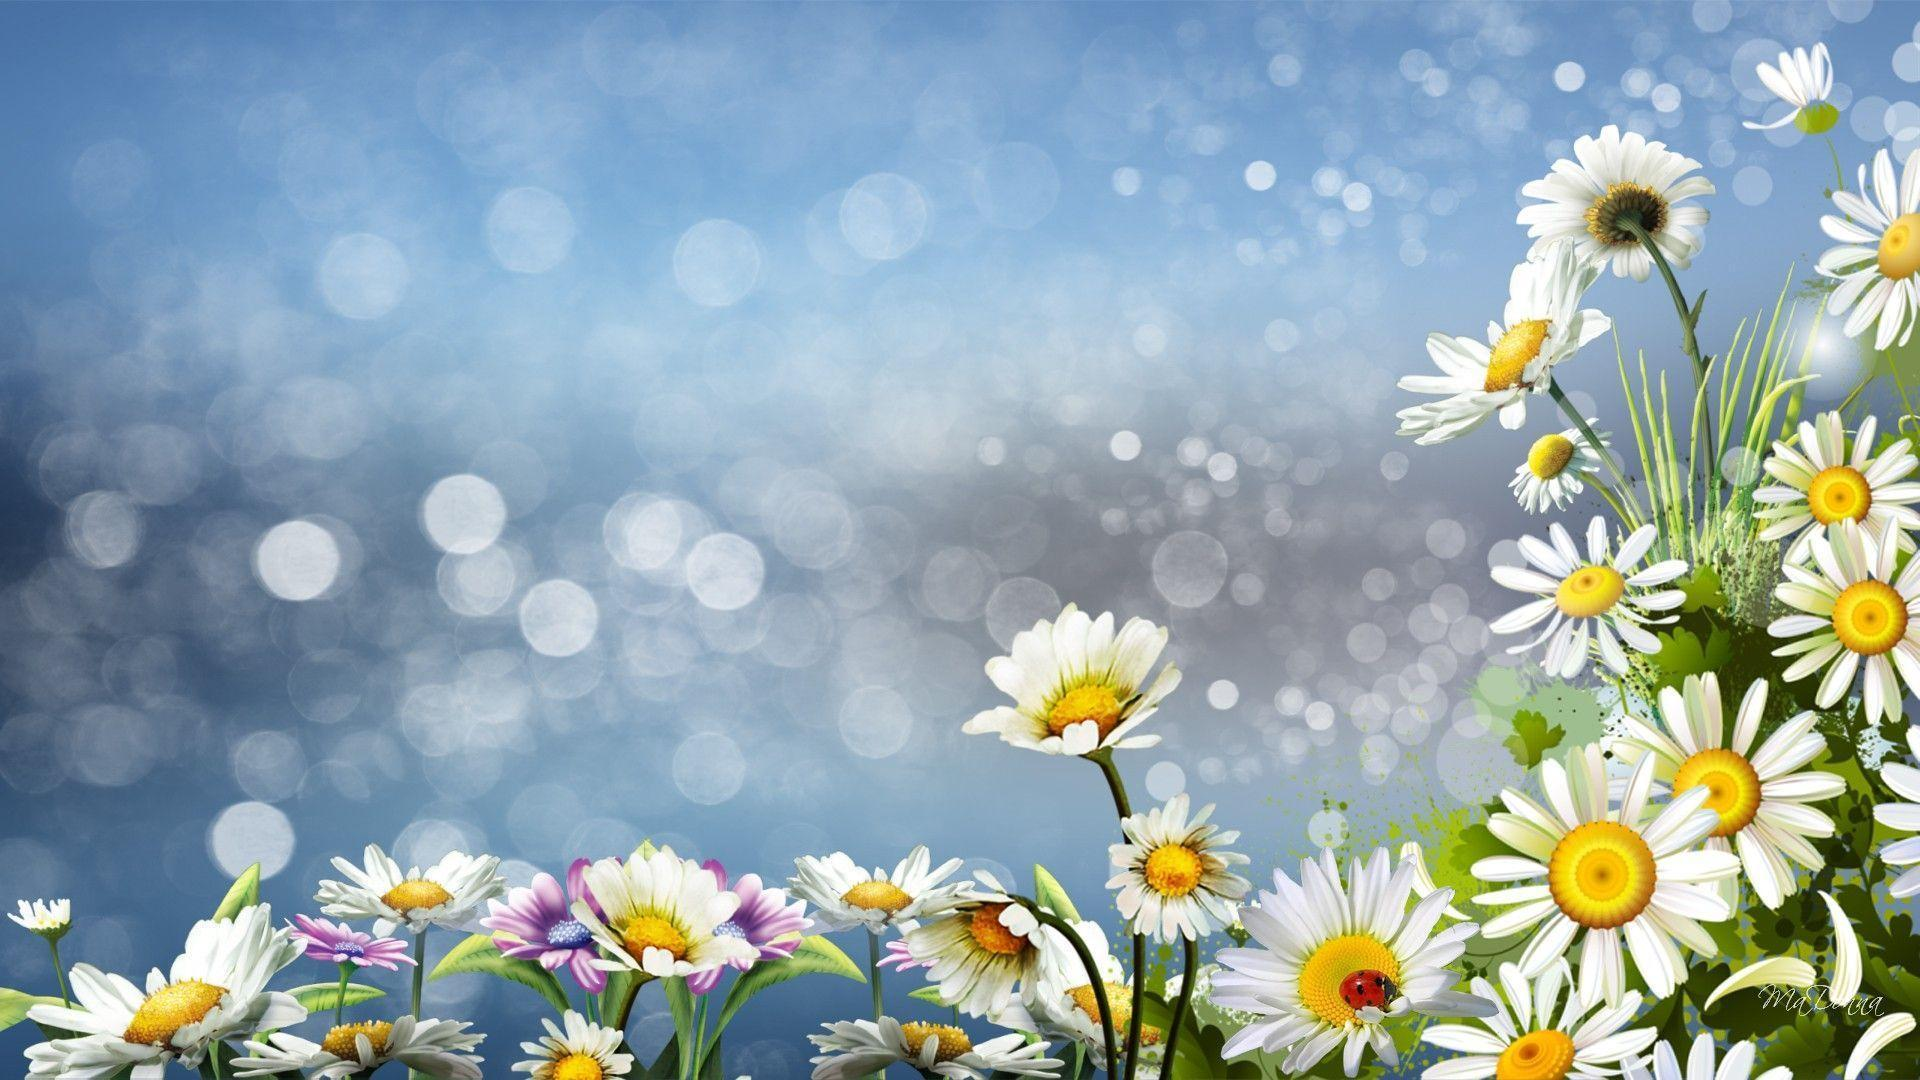 Daisies Surprise Daisy Wild Flowers Nature hd wallpapers #